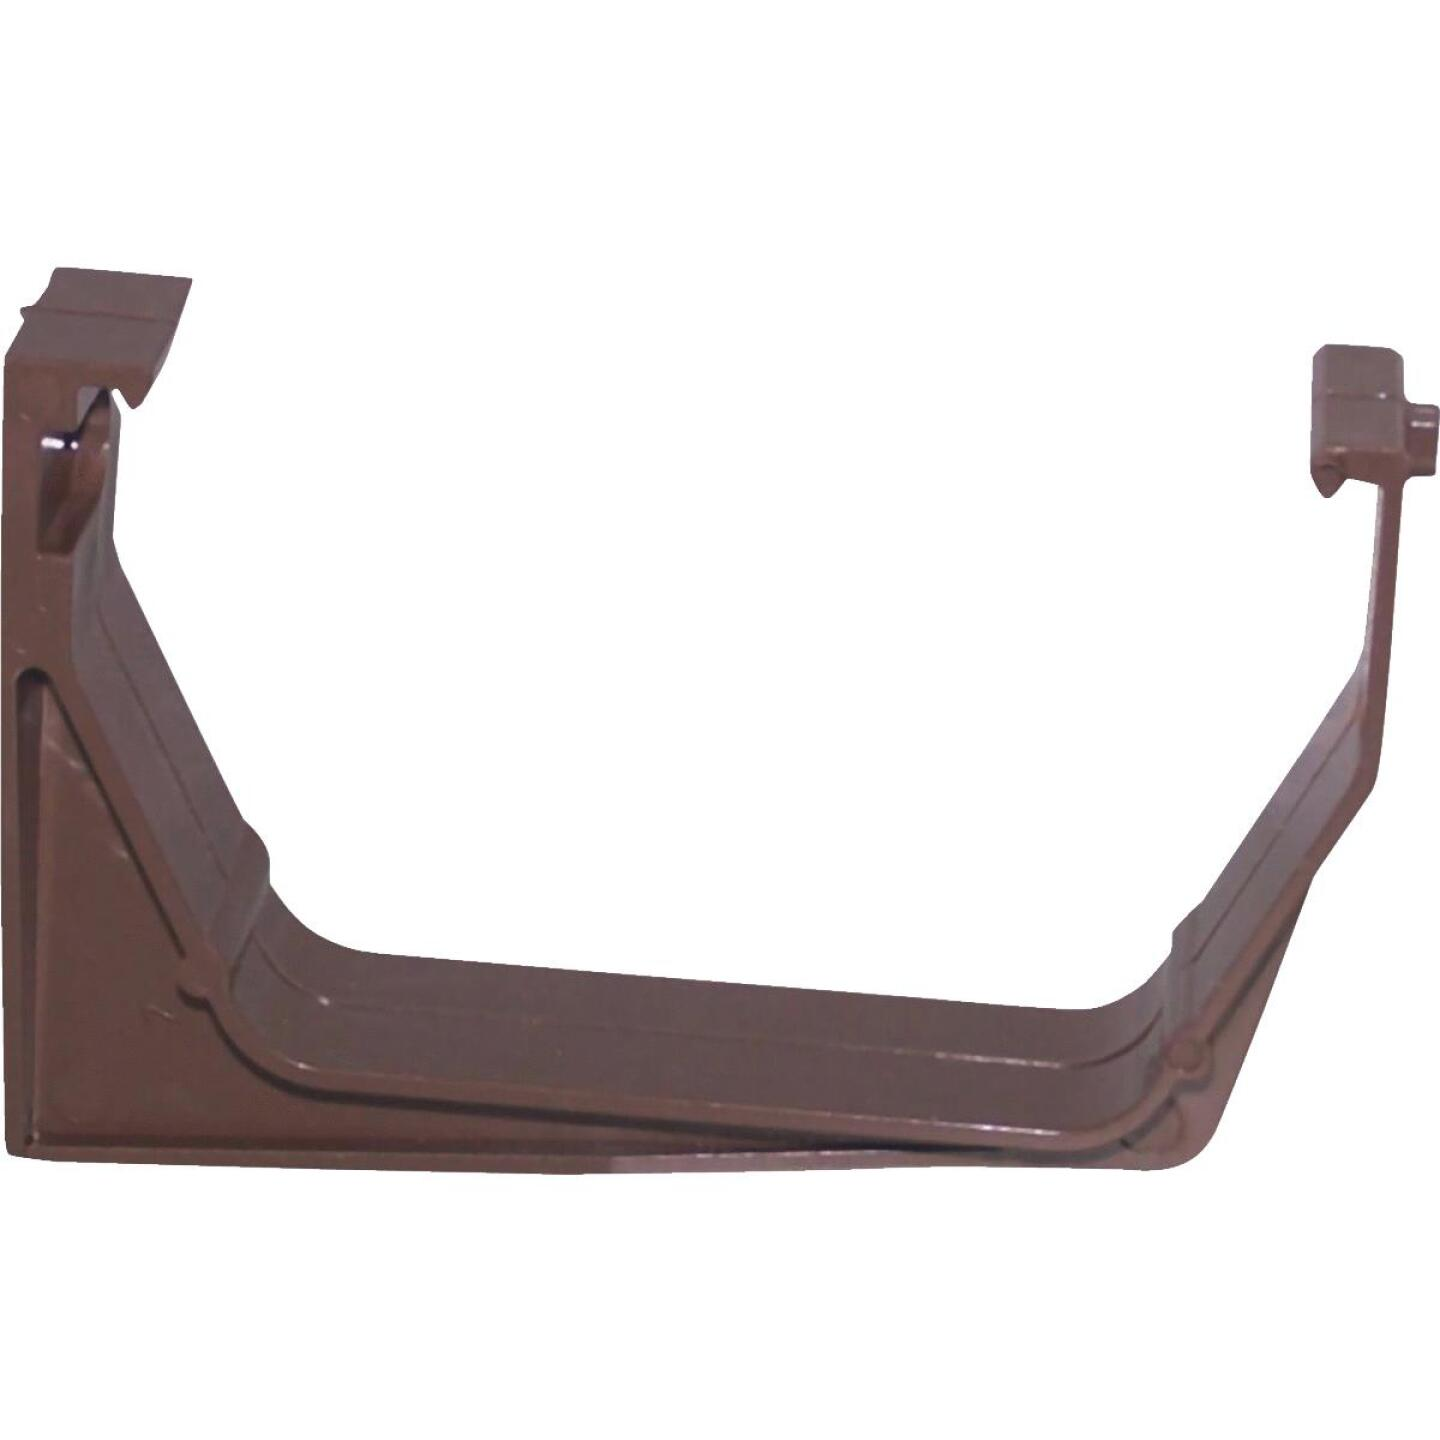 Raingo RainGo Vinyl Brown Heavy Load Gutter Hanger Bracket Image 1